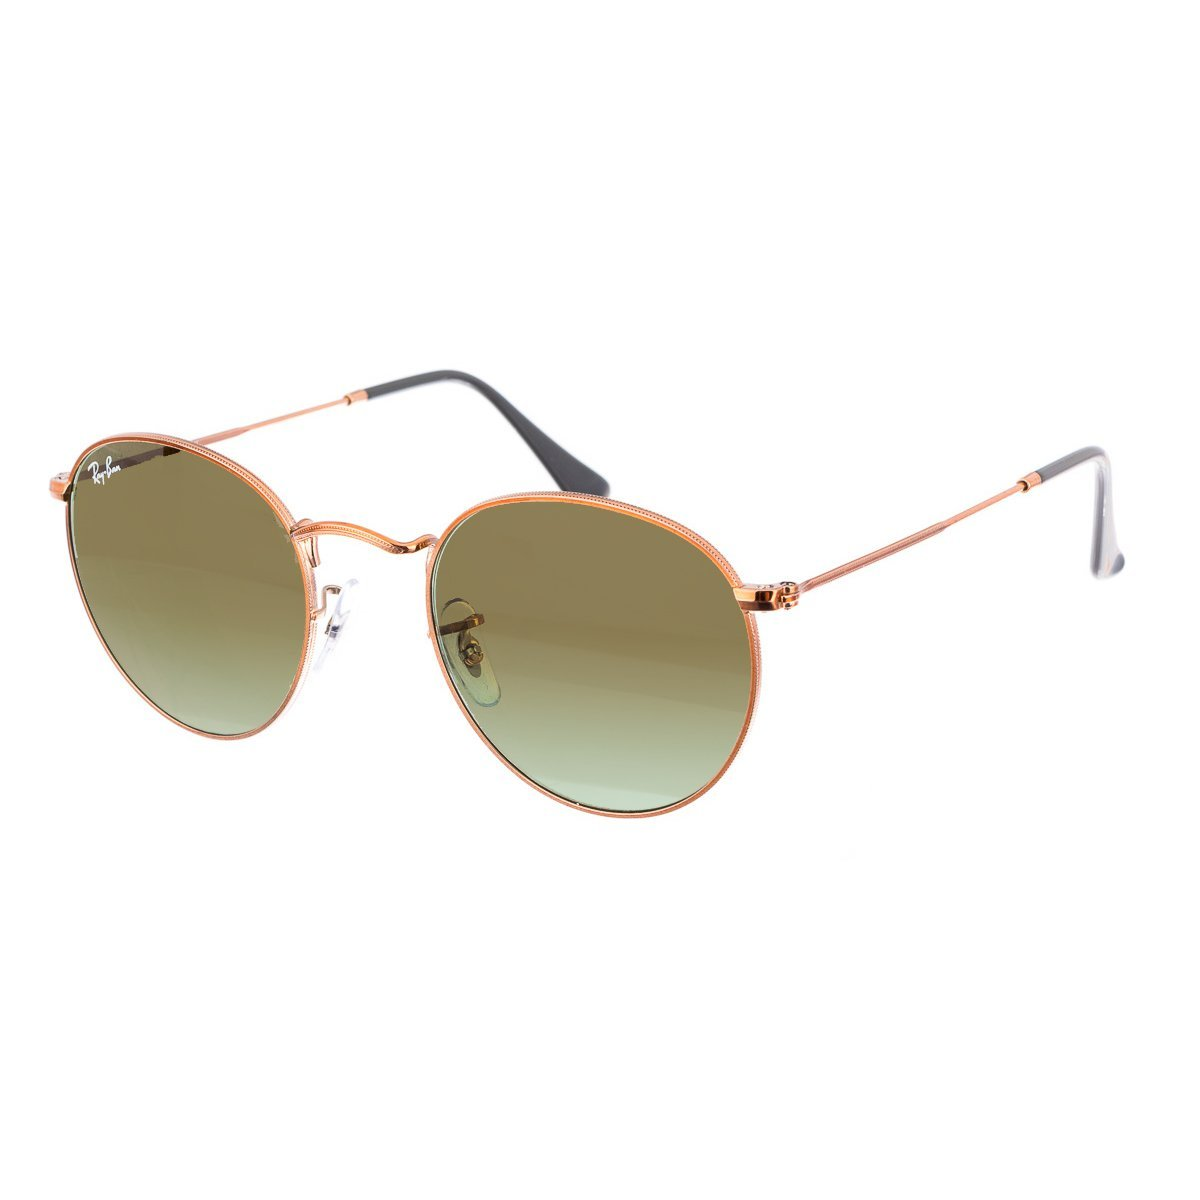 Copper Rb LunettesMarronbronze Mixte Montures Mm Adulte 3447 De 9002a653 Ray ban nO0wvN8m